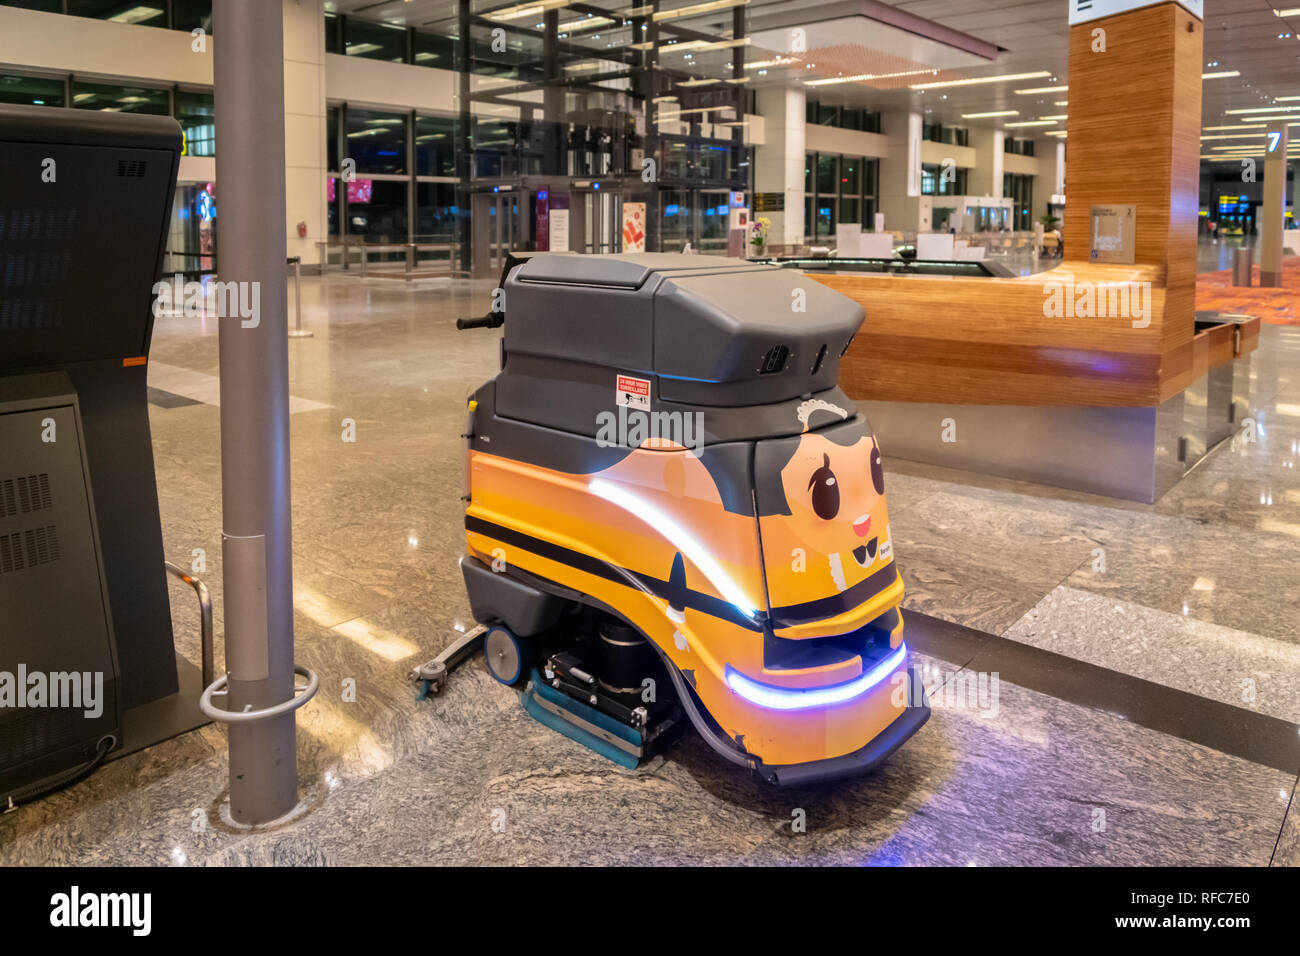 Singapore - January 2019: Cleaning robot operating automated work in Singapore Changi Airport. - Stock Image